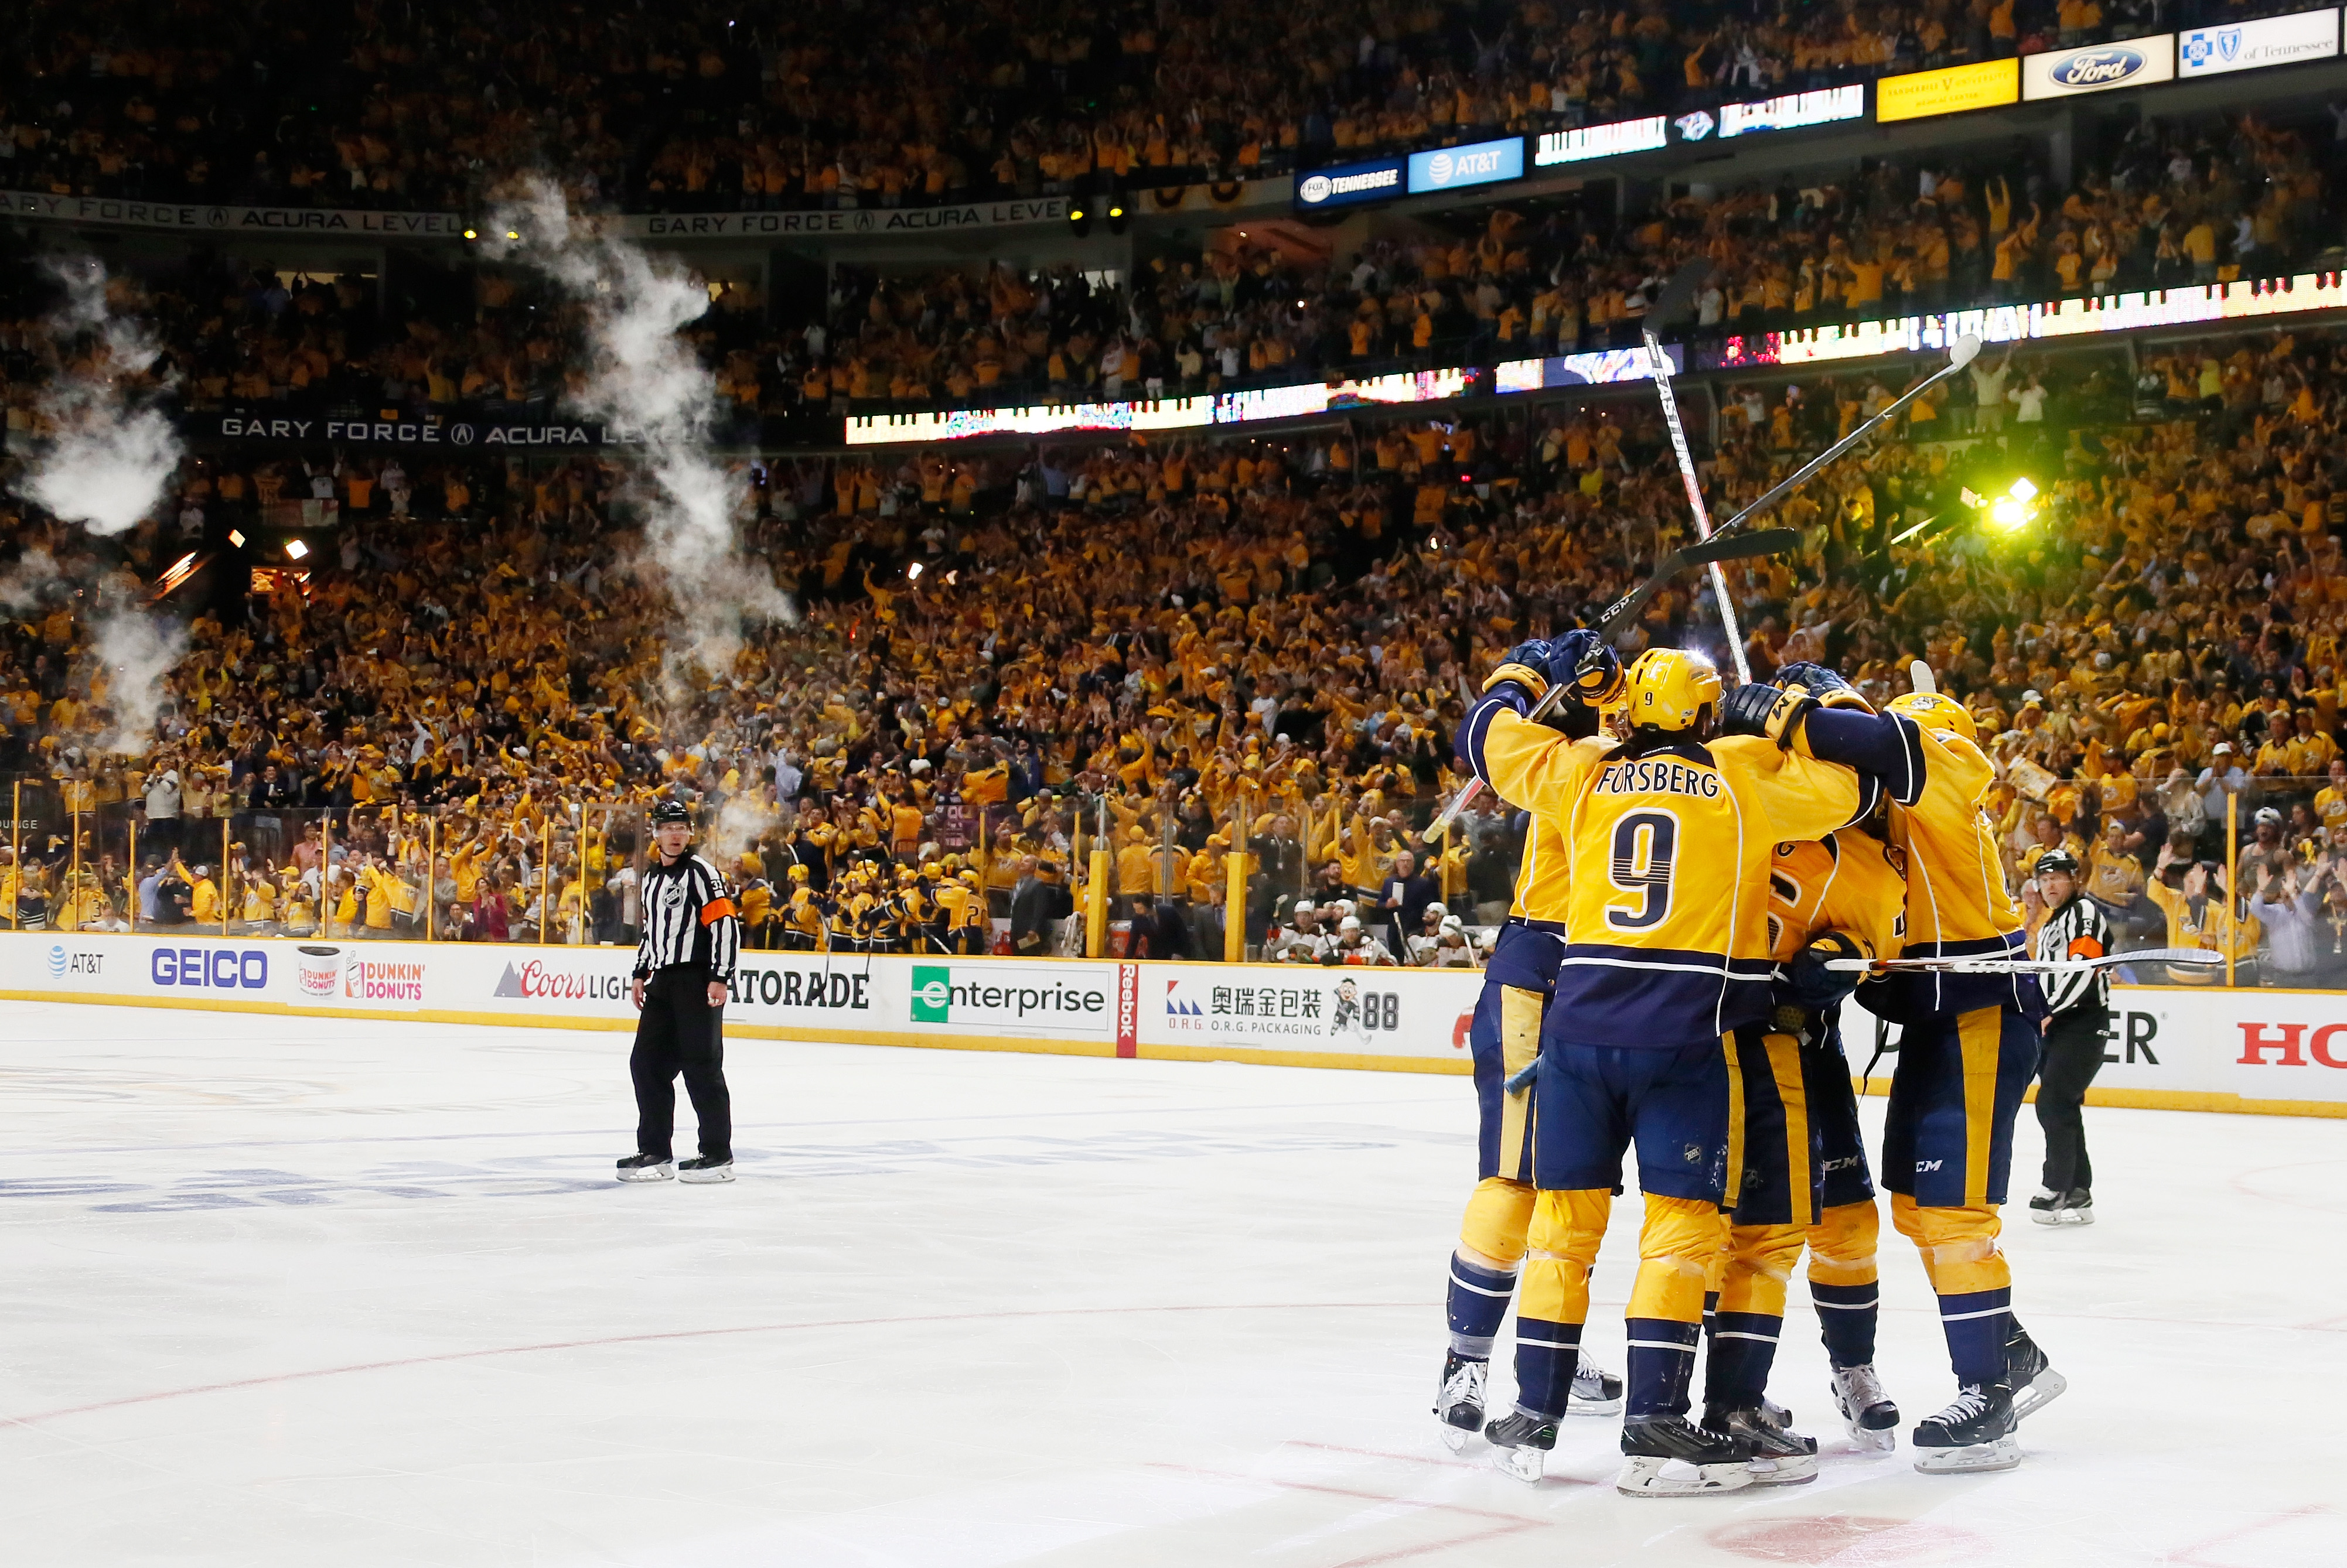 2017 Stanley Cup Playoffs - On the Forecheck on gary force arena, gary force honda, gary force toyota,